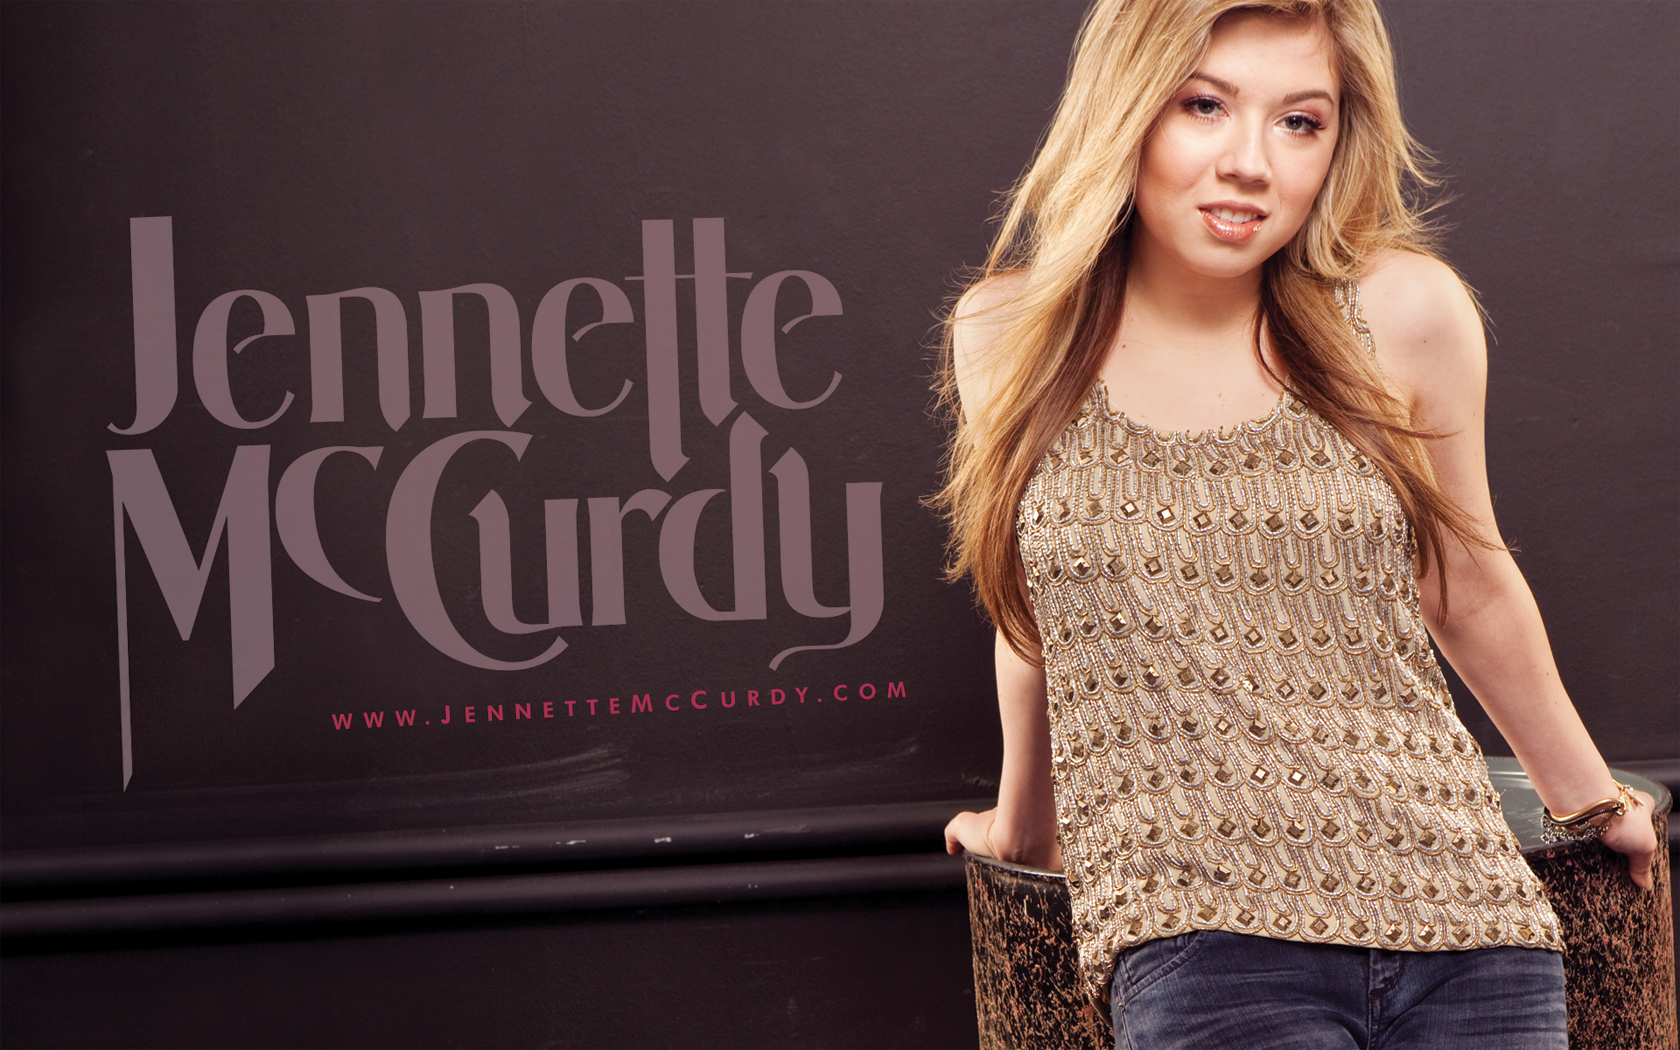 1680x1050 - Jennette McCurdy Wallpapers 11